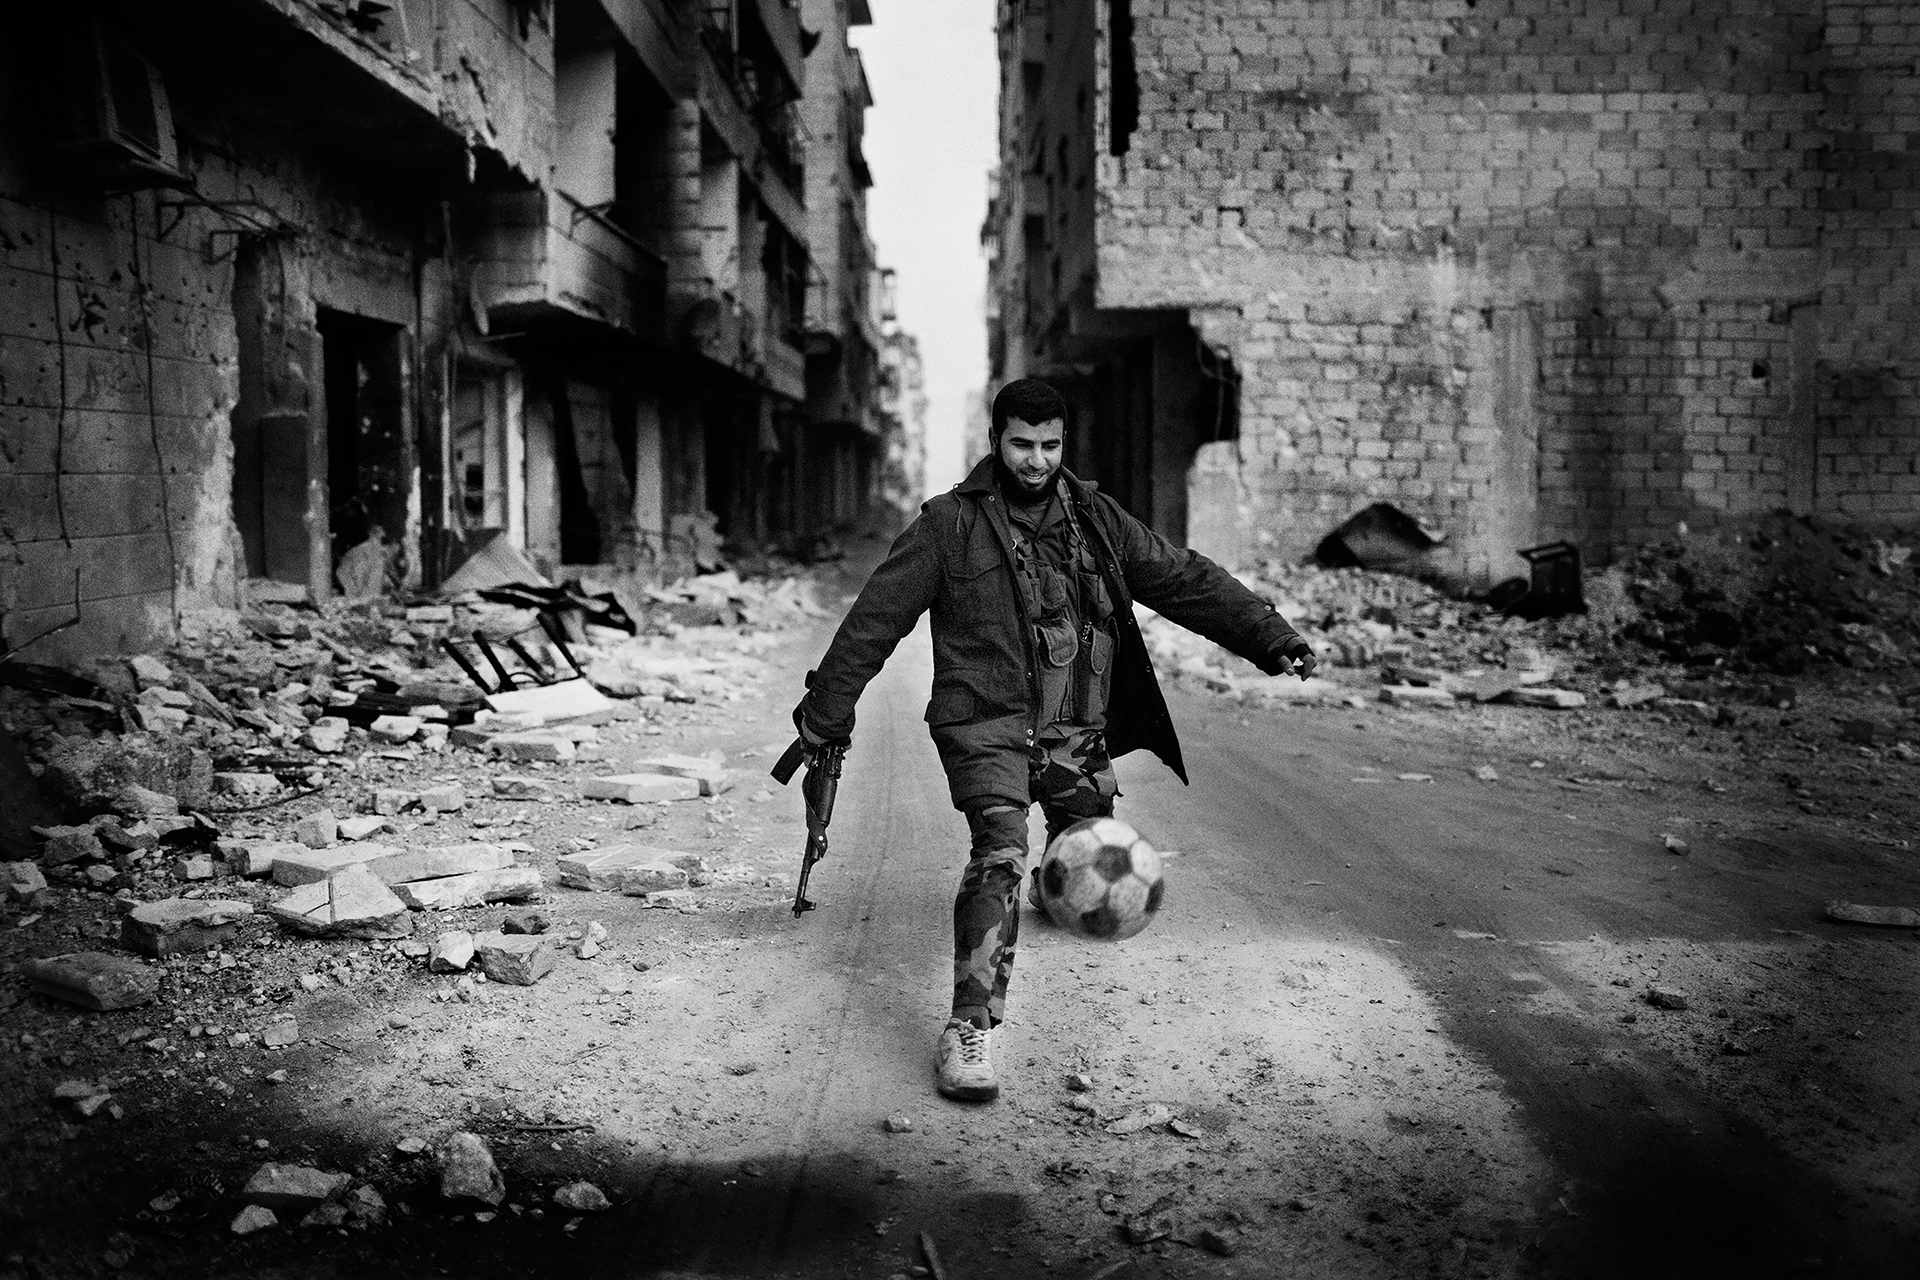 "A Syrian islamist rebel plays football in the Al-Amriyah neighborhood of Aleppo, Syria, Wednesday, Jan. 2, 2013. The United Nations estimated that more than 400,000 people have been killed in Syria's 60-month-old uprising against authoritarian rule, a toll one-third higher than what anti-regime activists had counted. The U.N. human rights chief called the toll ""truly shocking."" Copyright: Spanish Photojournalist Andoni Lubaki"